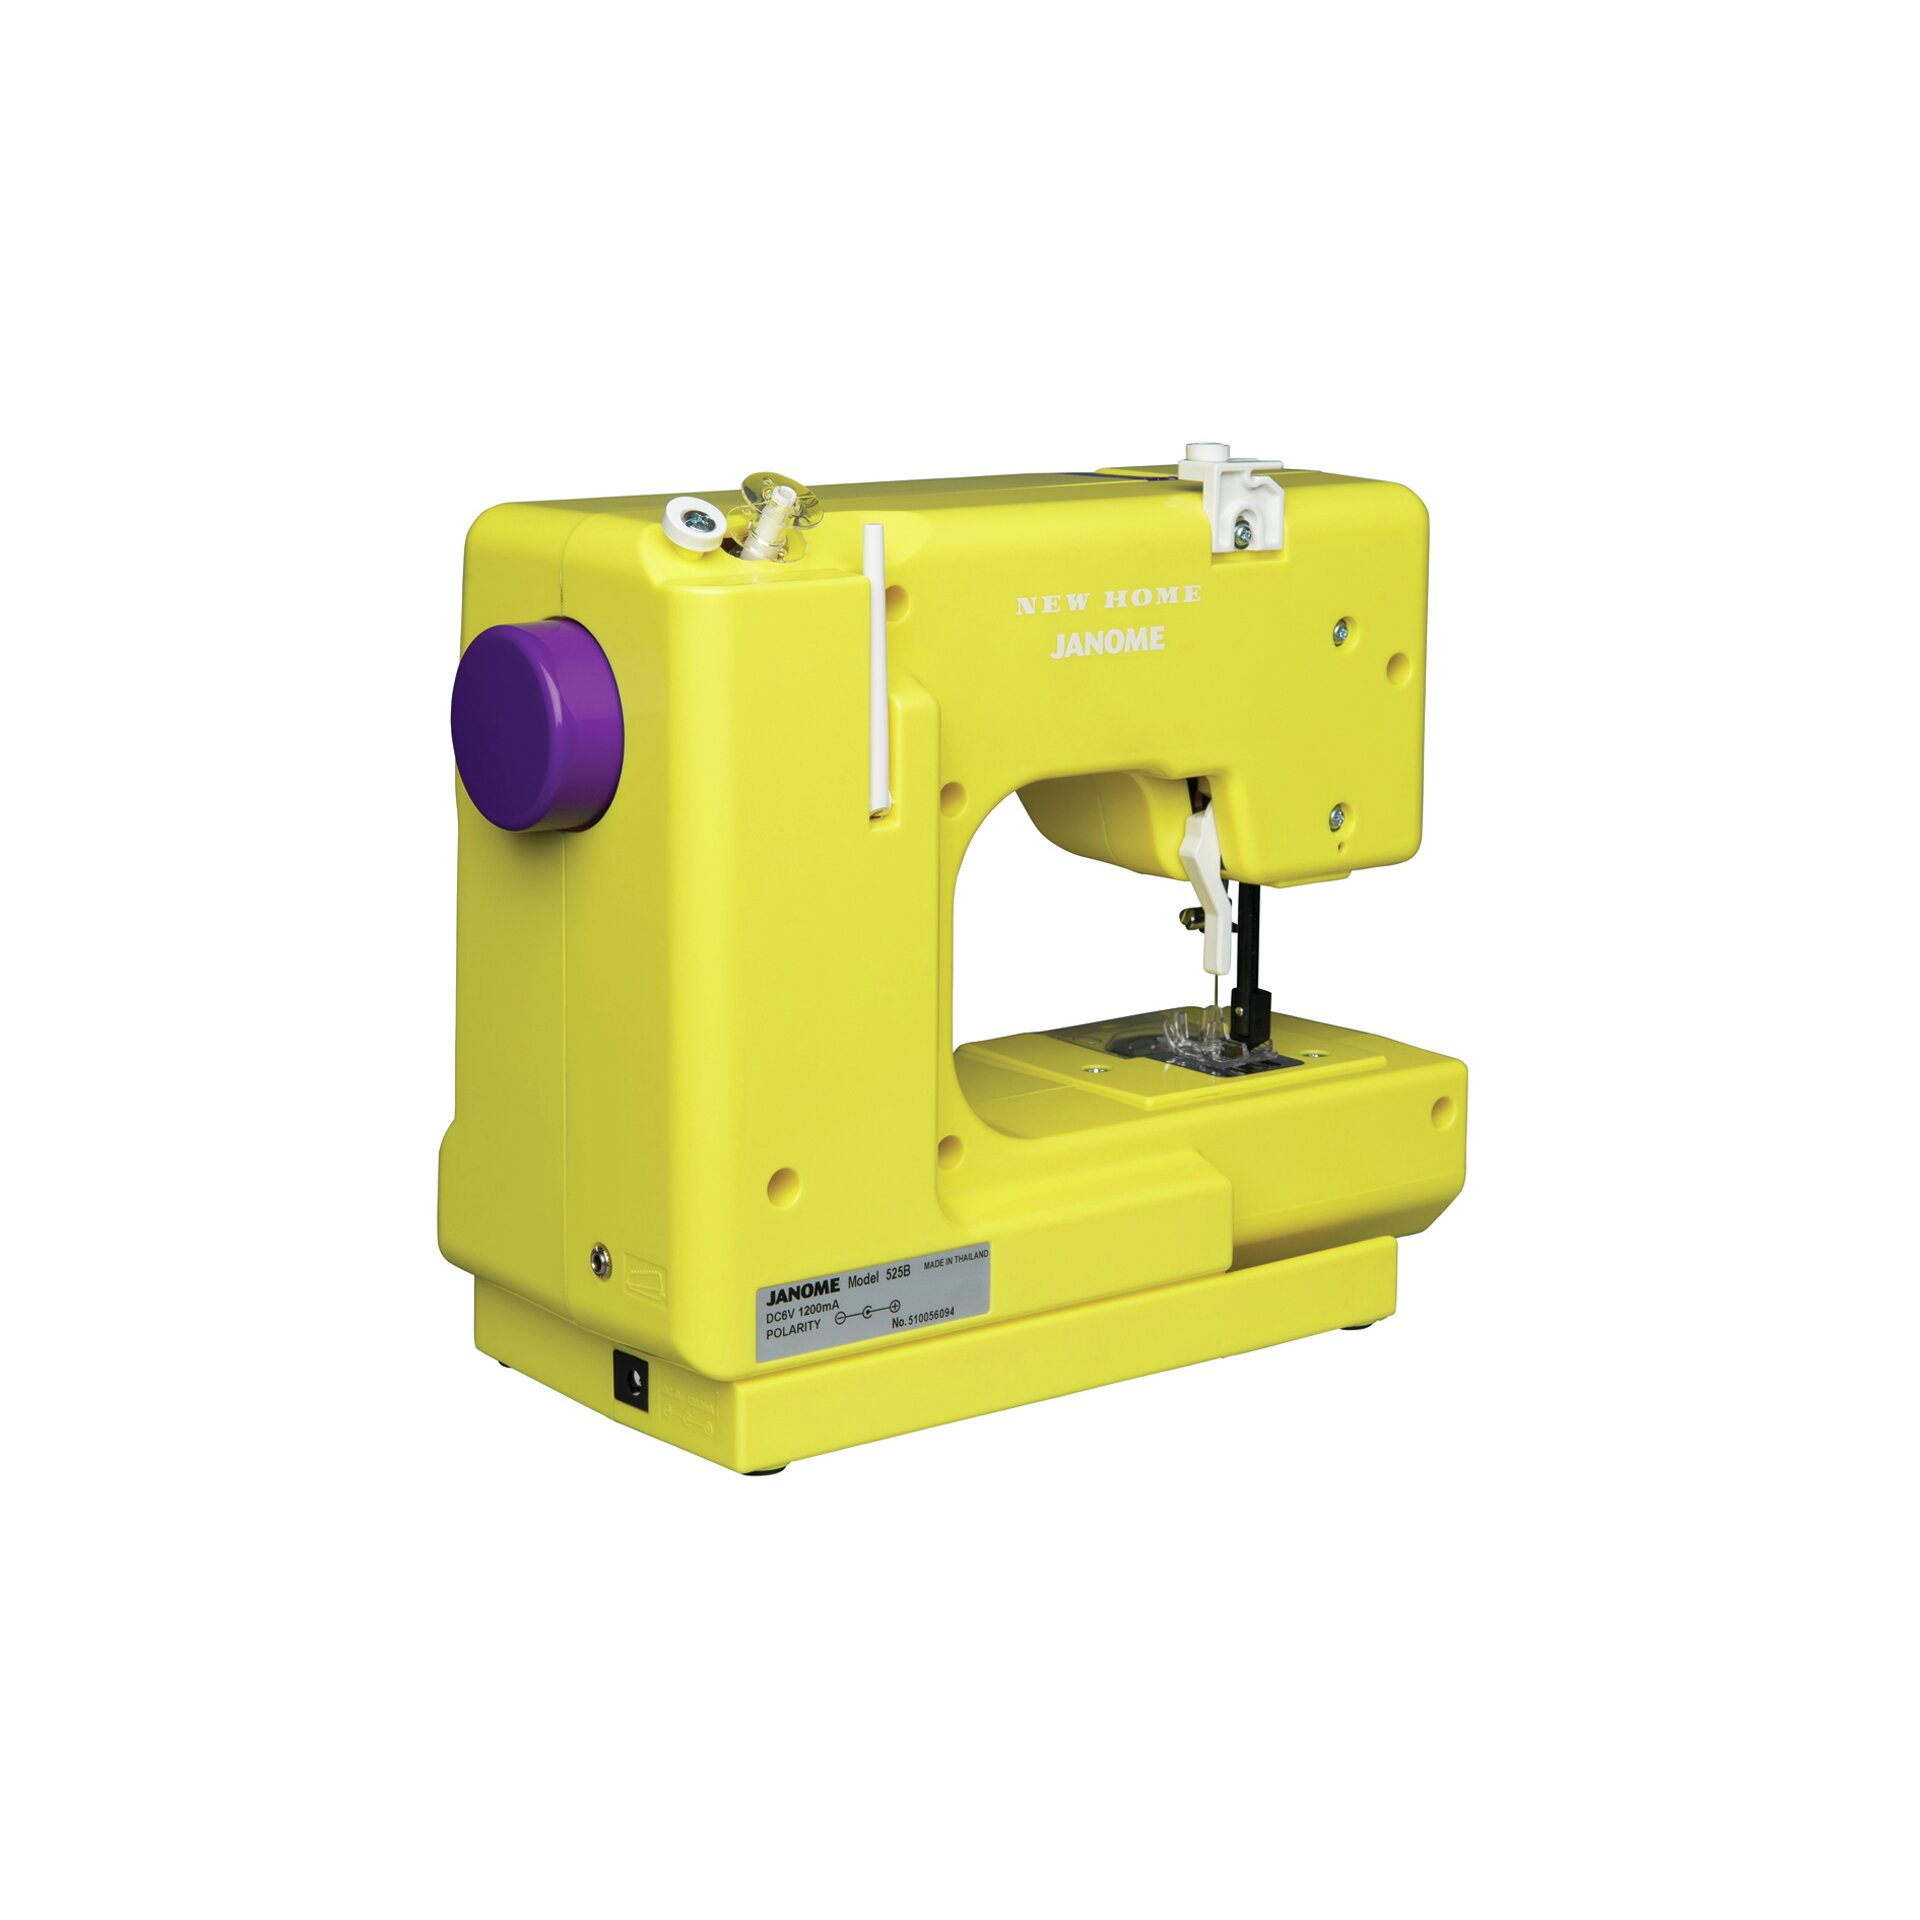 janome home portable sewing machine